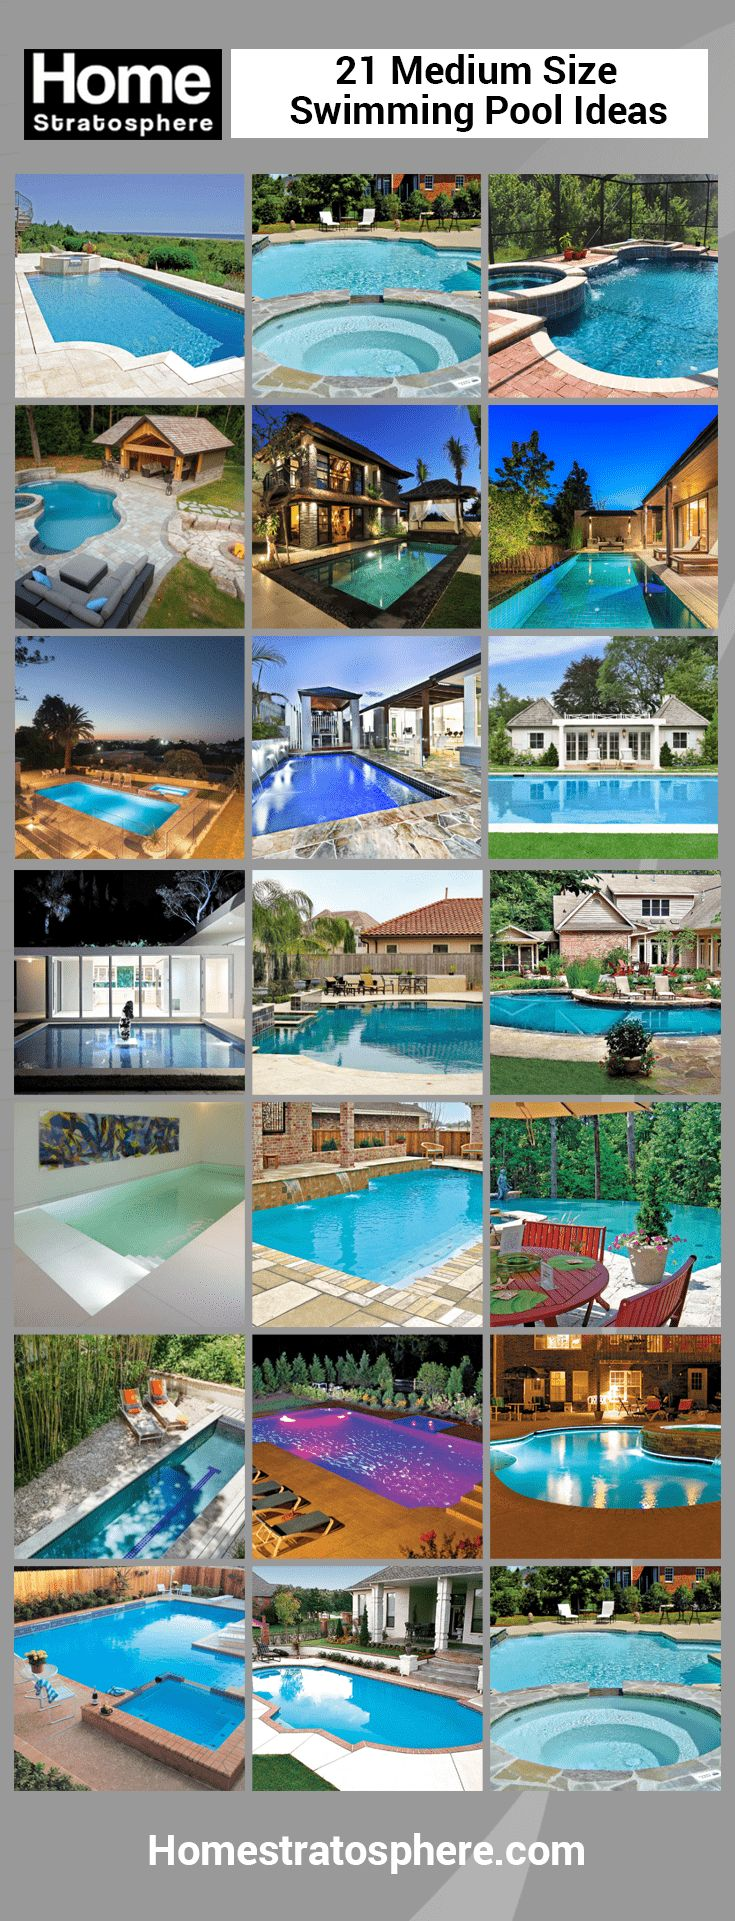 801 Swimming Pool Designs And Types For 2018. Medium Sized ...